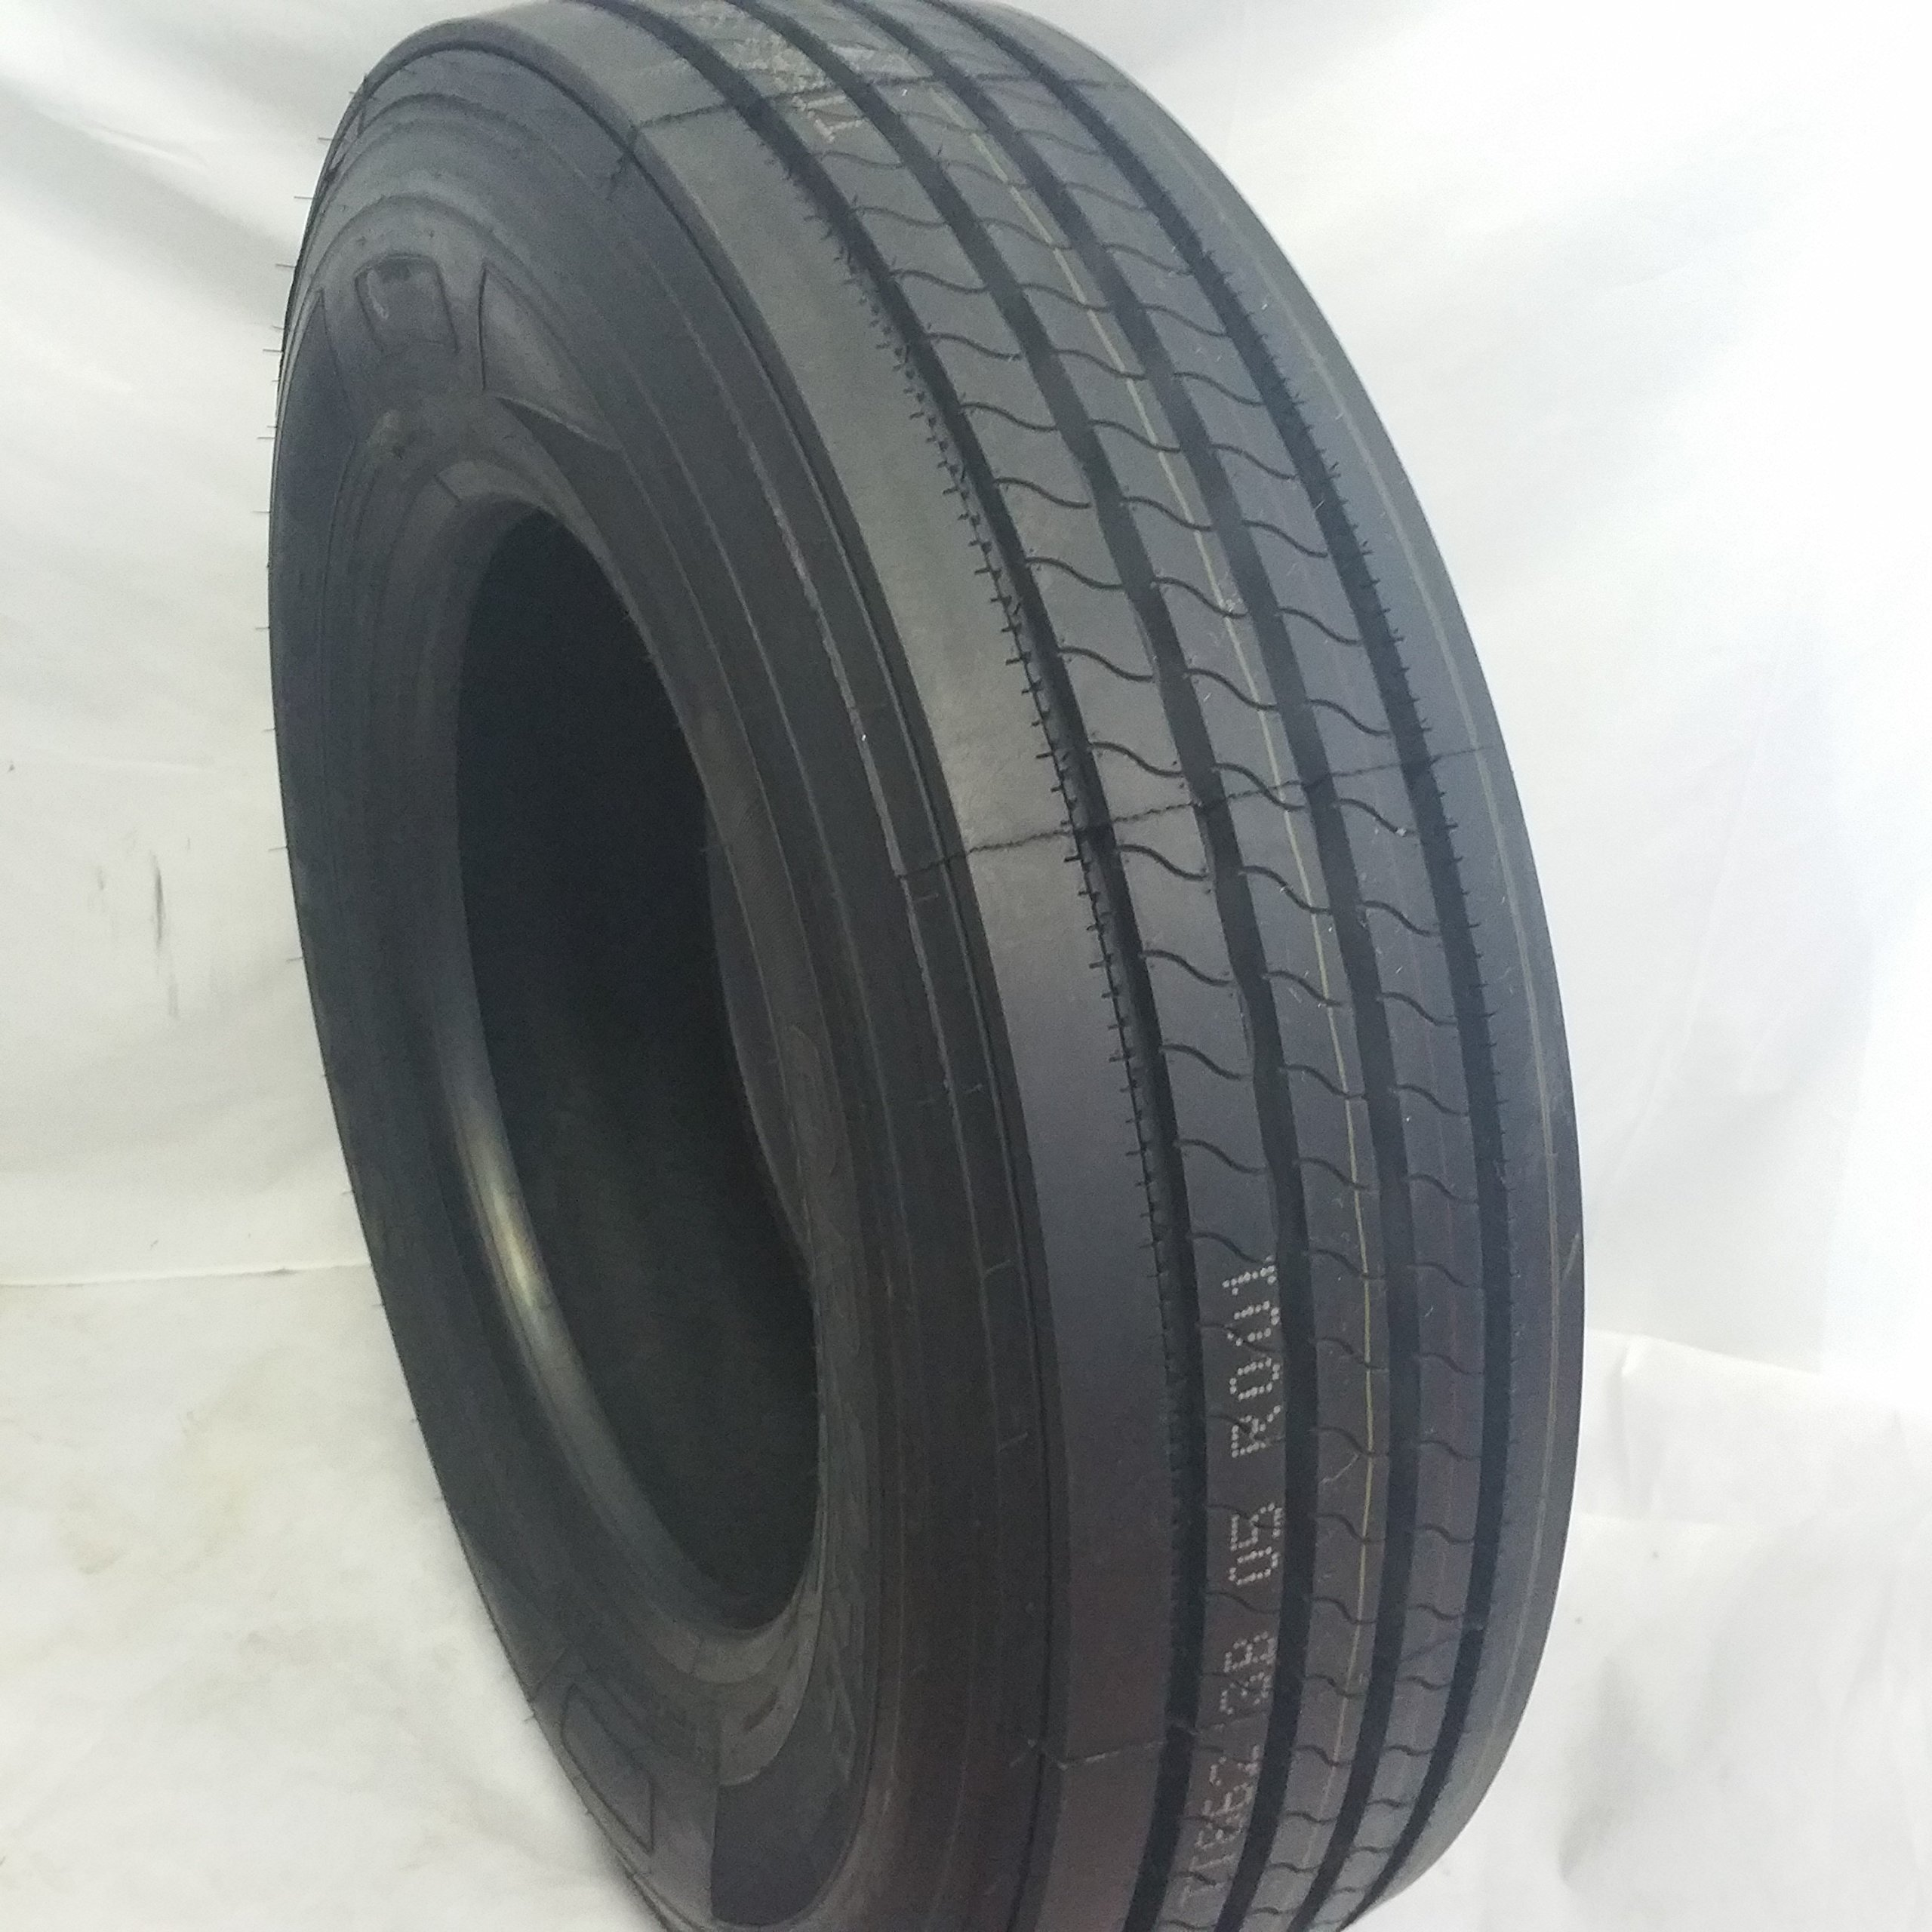 (8-Tires) 295/75R22.5 ROAD WARRIOR 16 PLY STEER ALL POSITIONS RADIAL TRUCK TIRES CLOSED SHOULDER